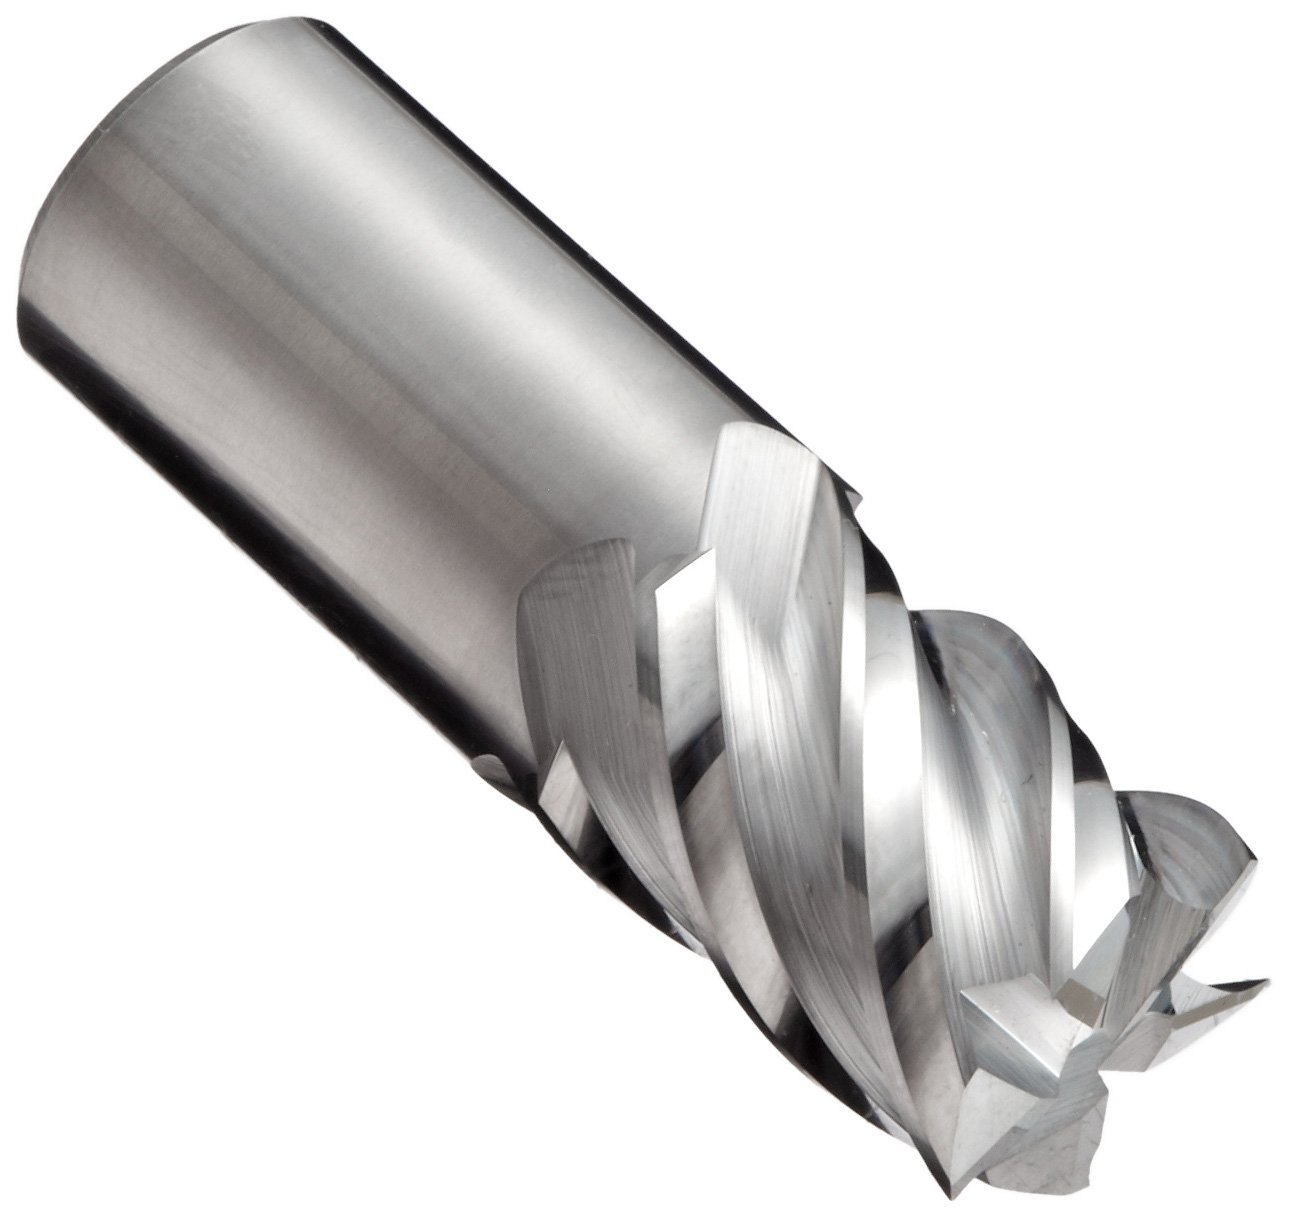 YG 1 E5066 Carbide Square Nose End Mill Uncoated Bright Finish Non Center Cutting 45 Deg Helix 5 Flutes 2 Overall Length 0.25 Cutting Diameter 0.25 Shank Diameter